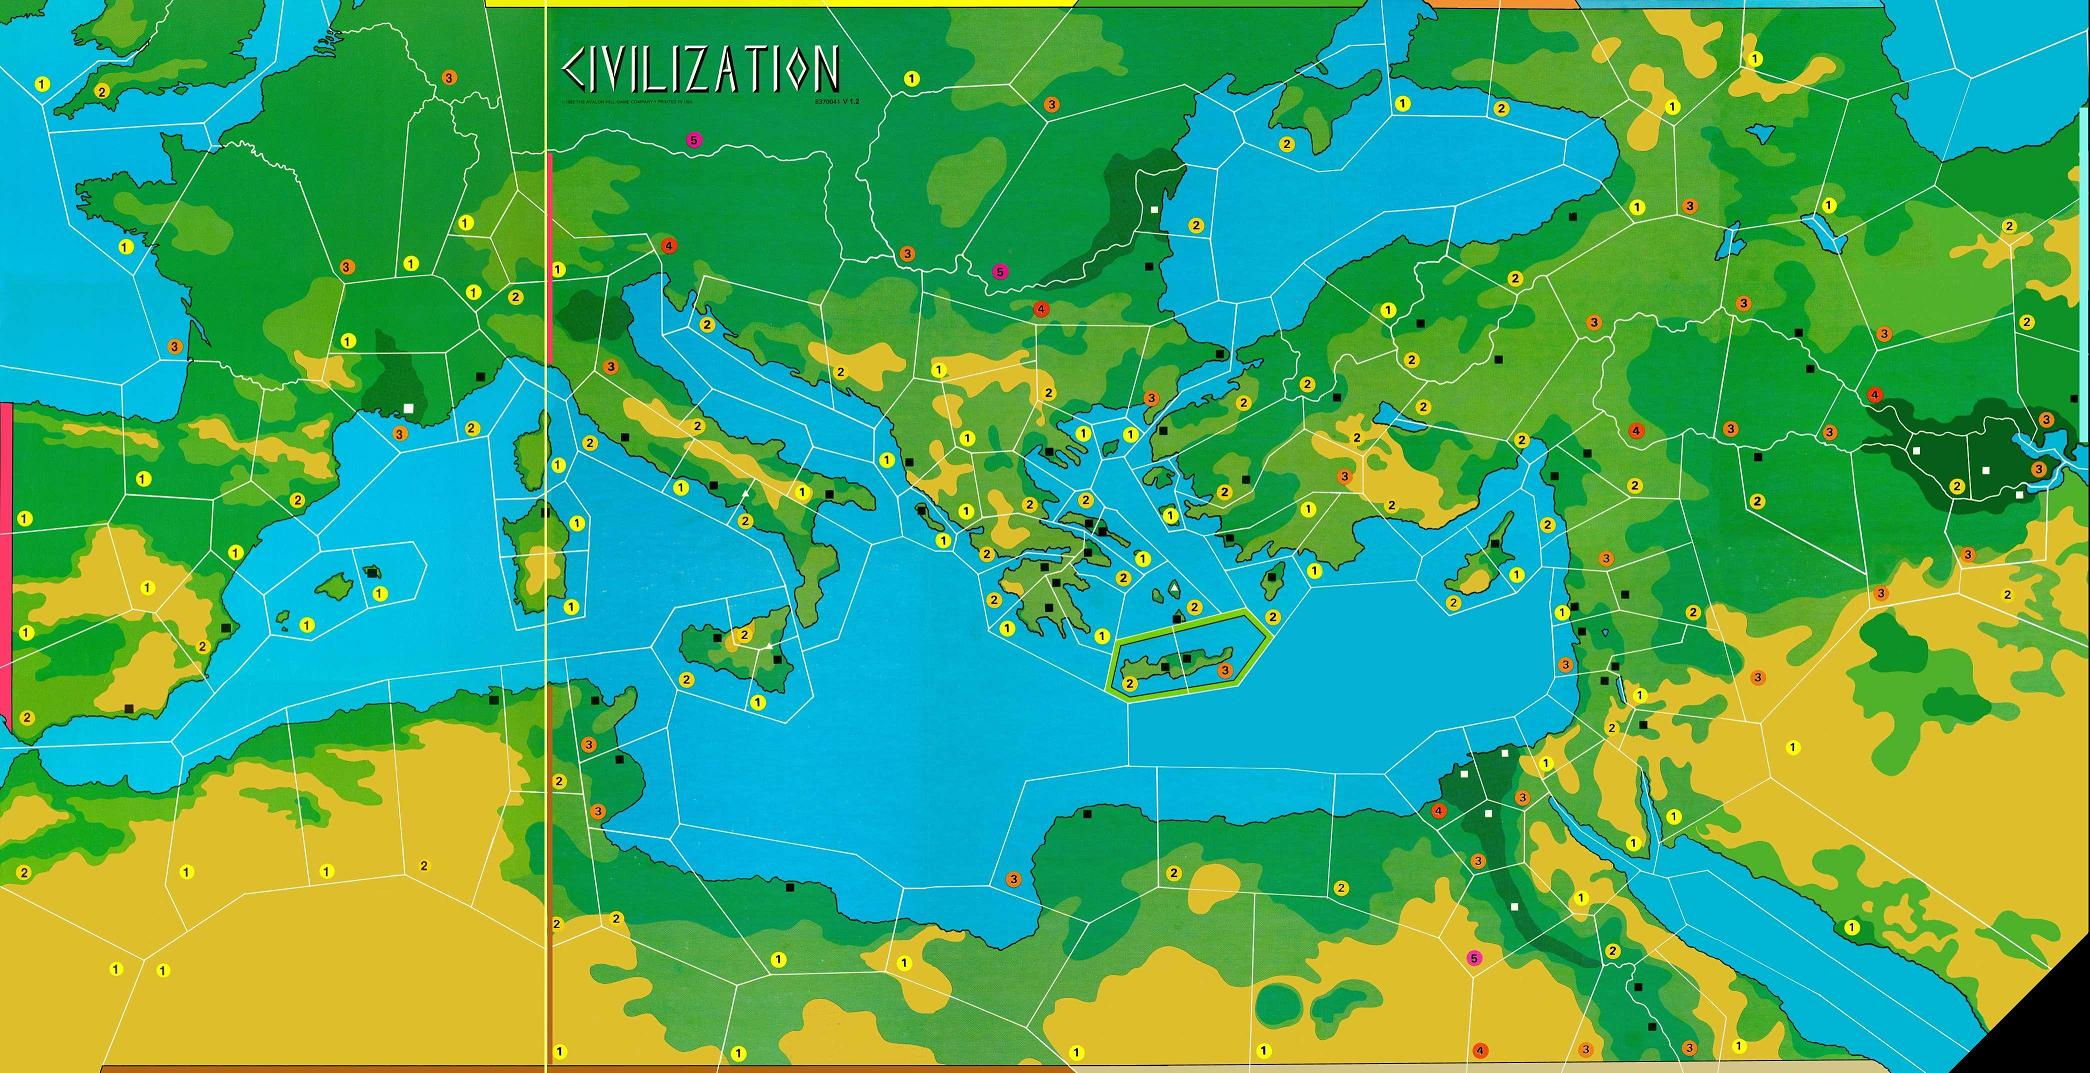 New game weekend civilization advanced civilization brooklyn civmap civilization game board with western expansion map gumiabroncs Images